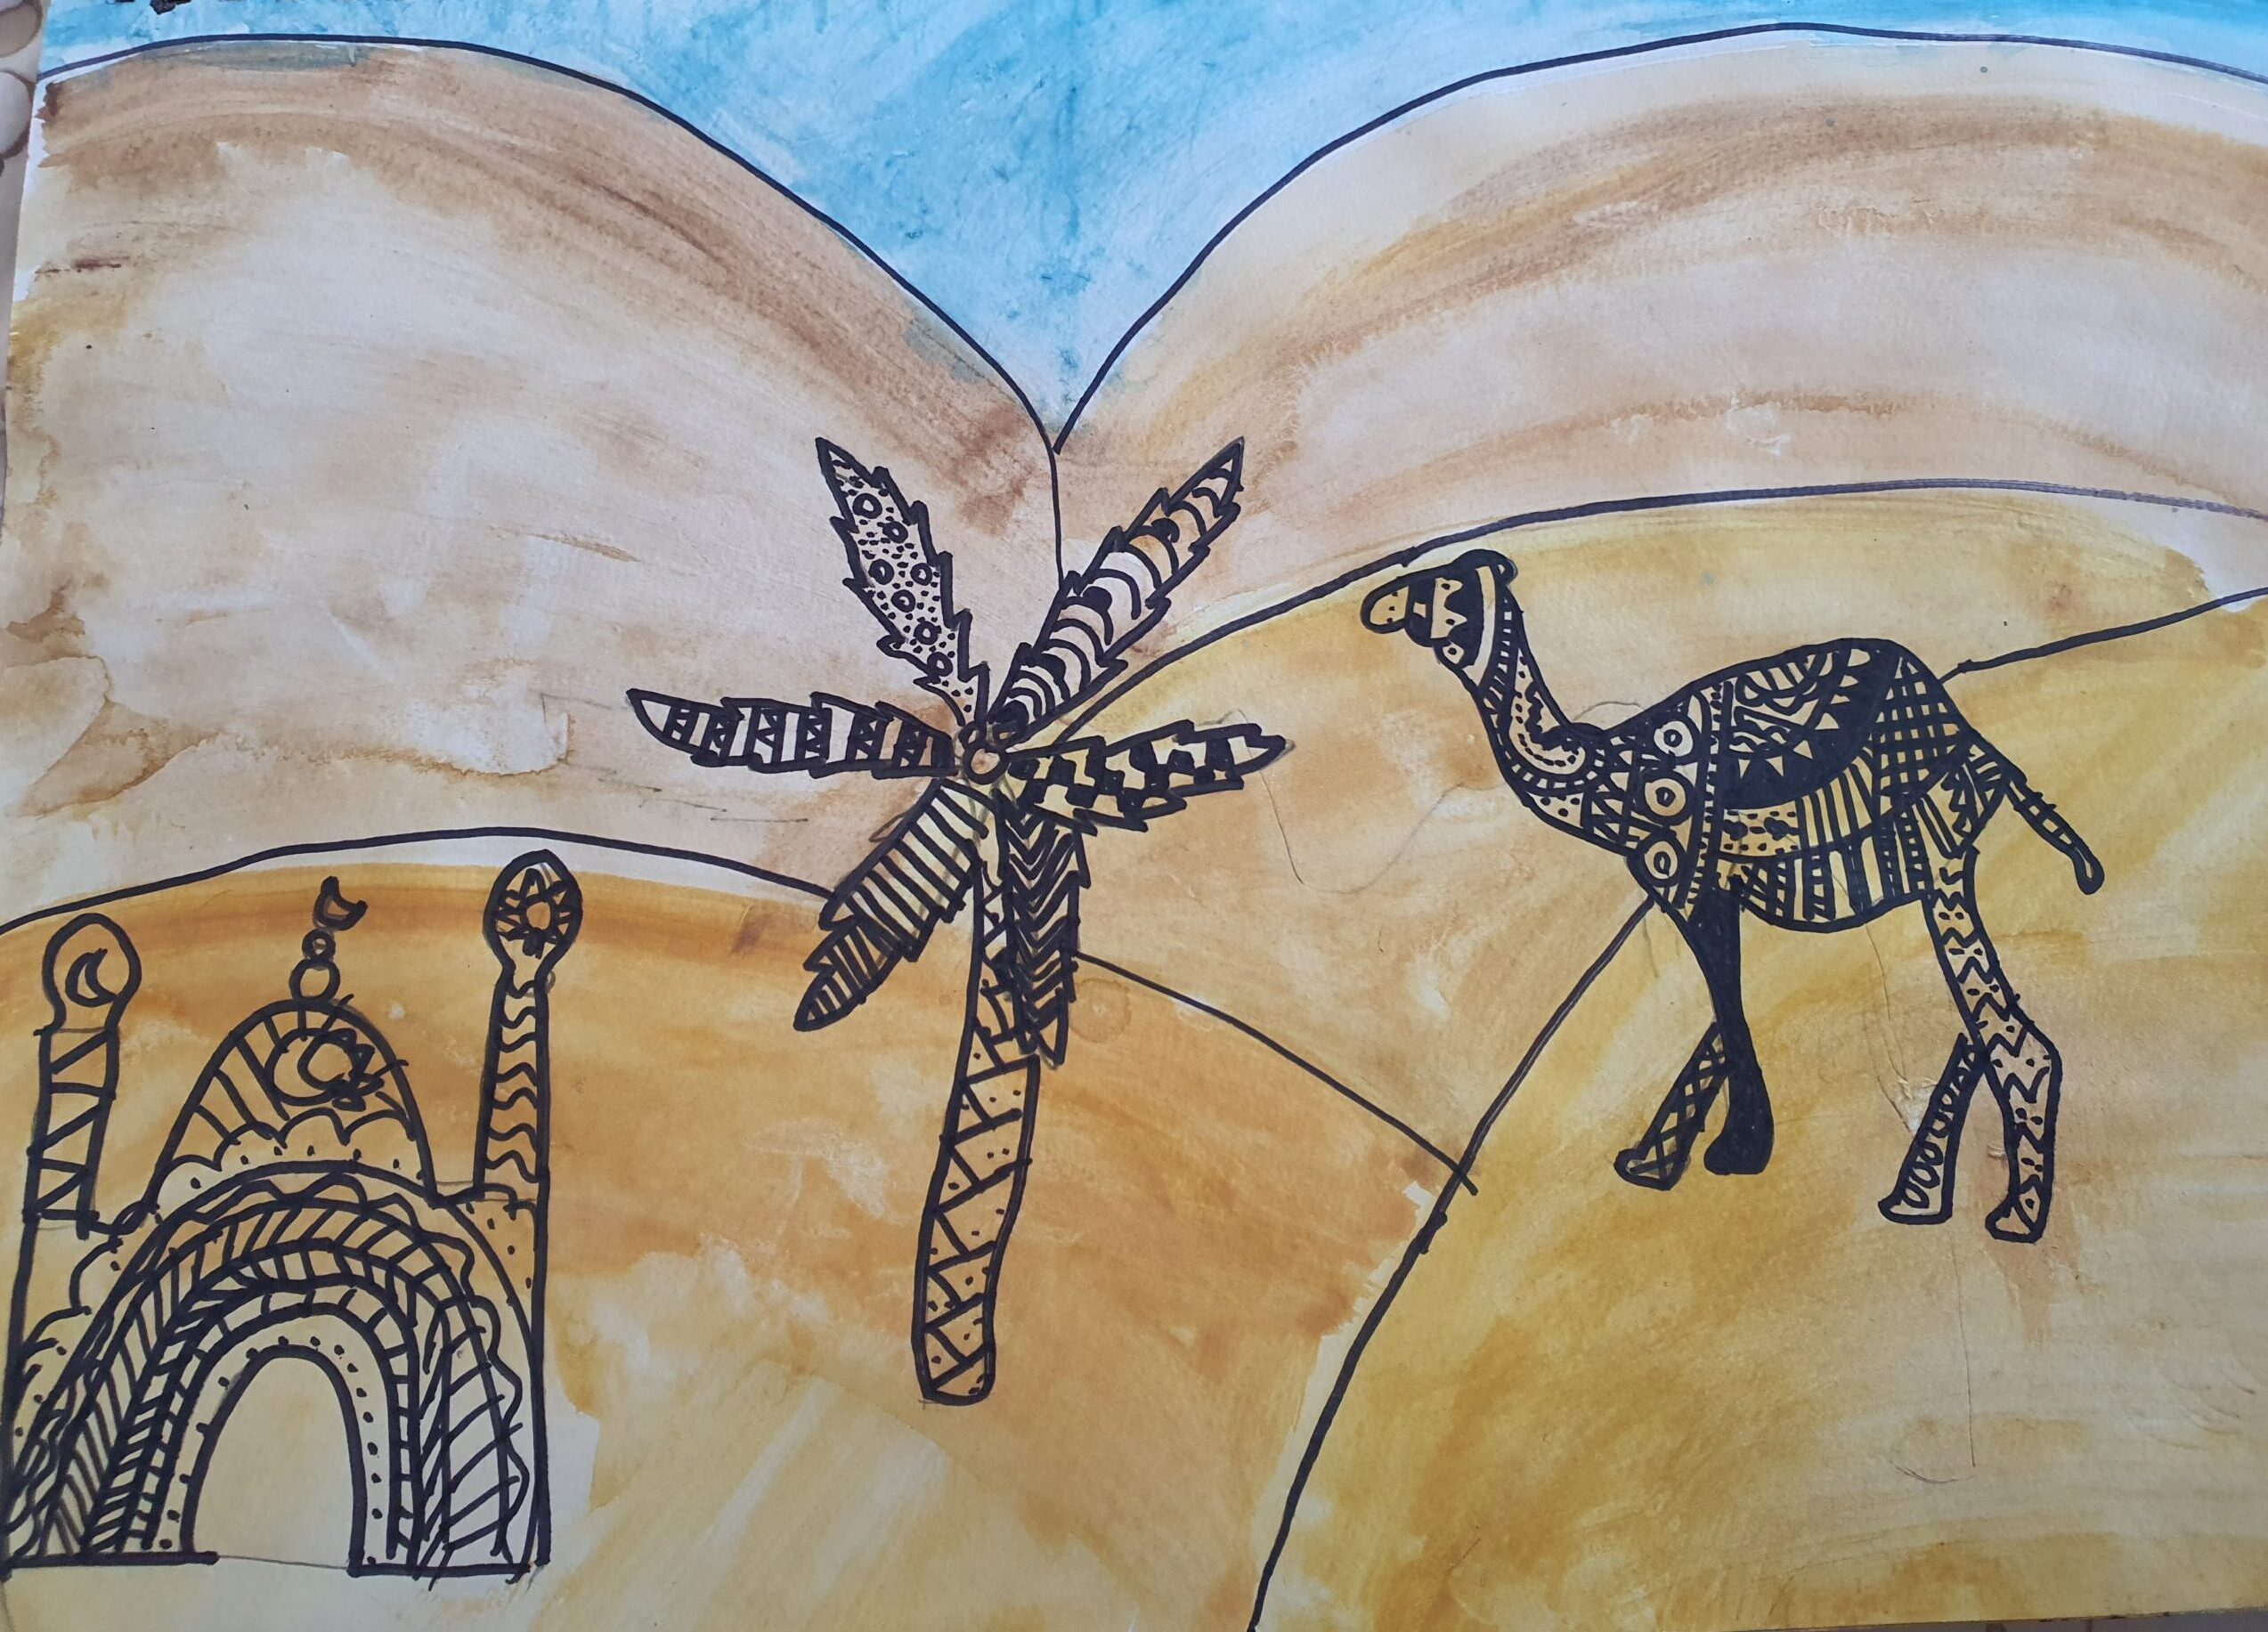 Life in the desert by Avni Chaudhary